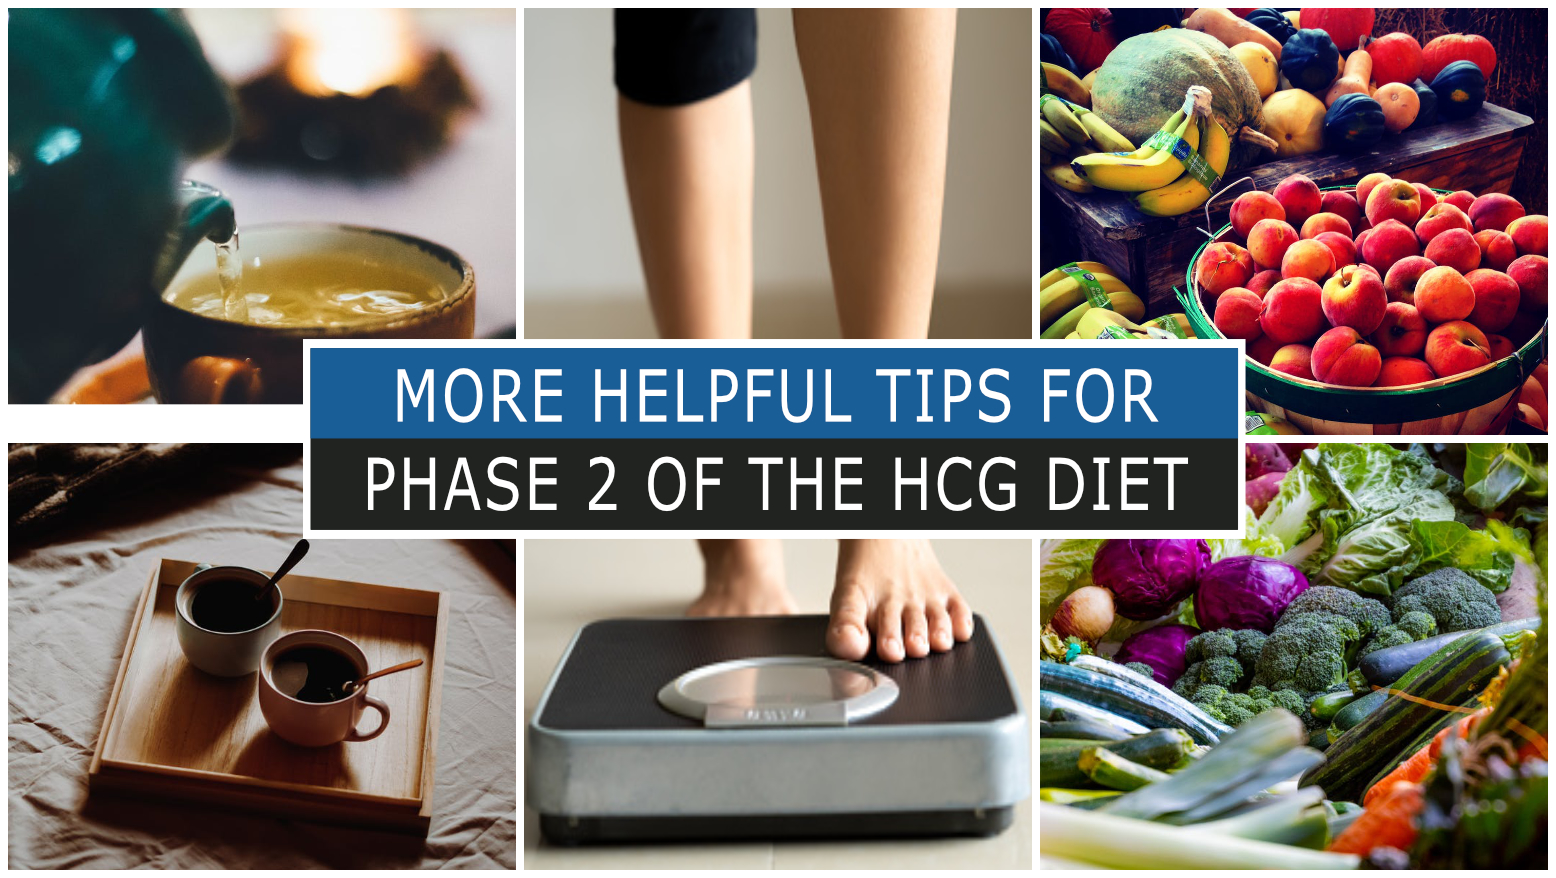 MORE HELPFUL TIPS FOR PHASE 2 OF THE HCG DIET